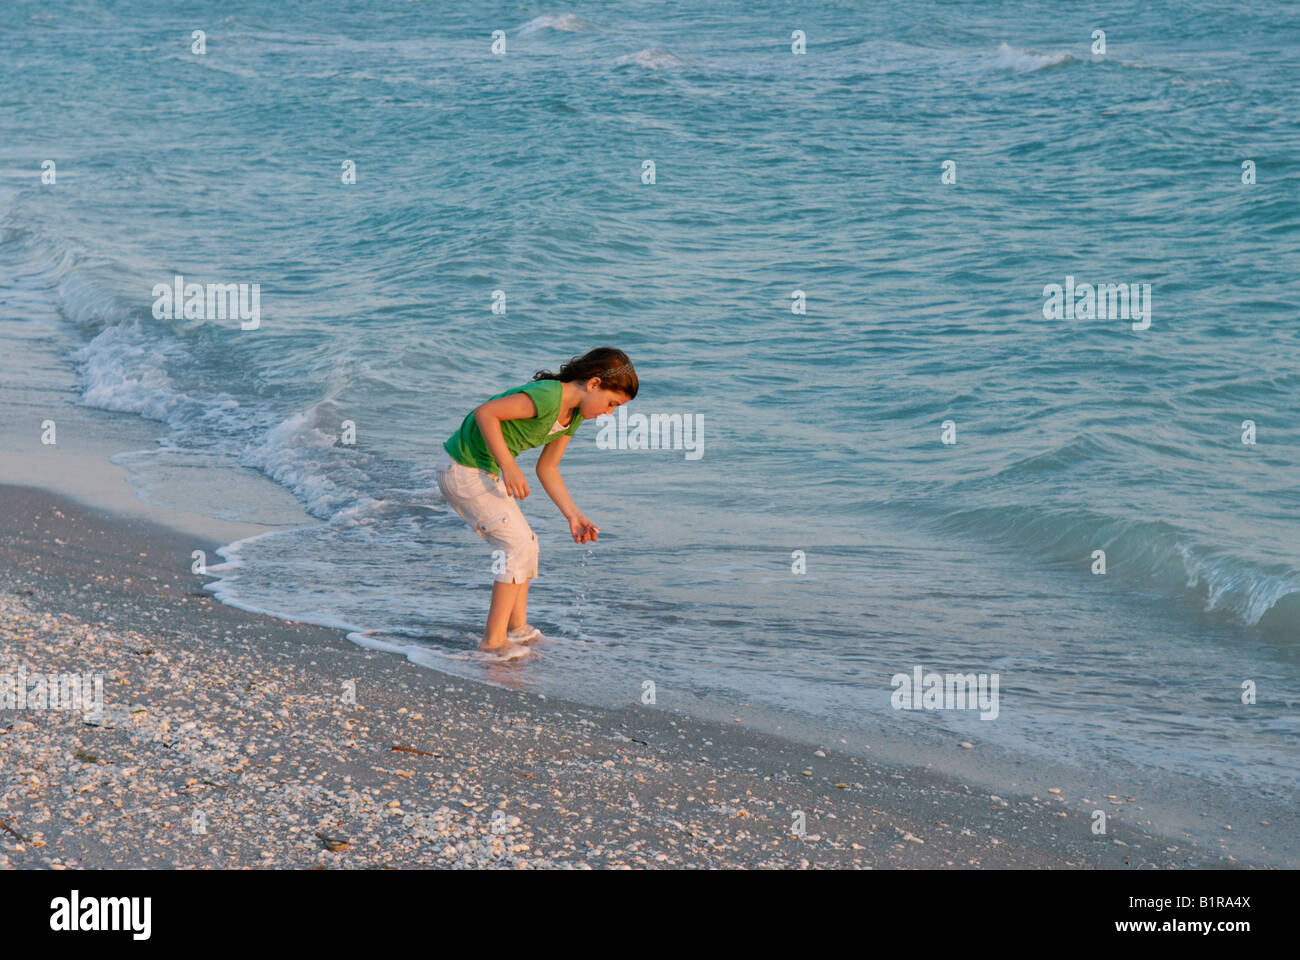 Young girl 9 10 years old collecting shells at water's edge Bowman's Beach Sanibel Island Florida at sunset - Stock Image